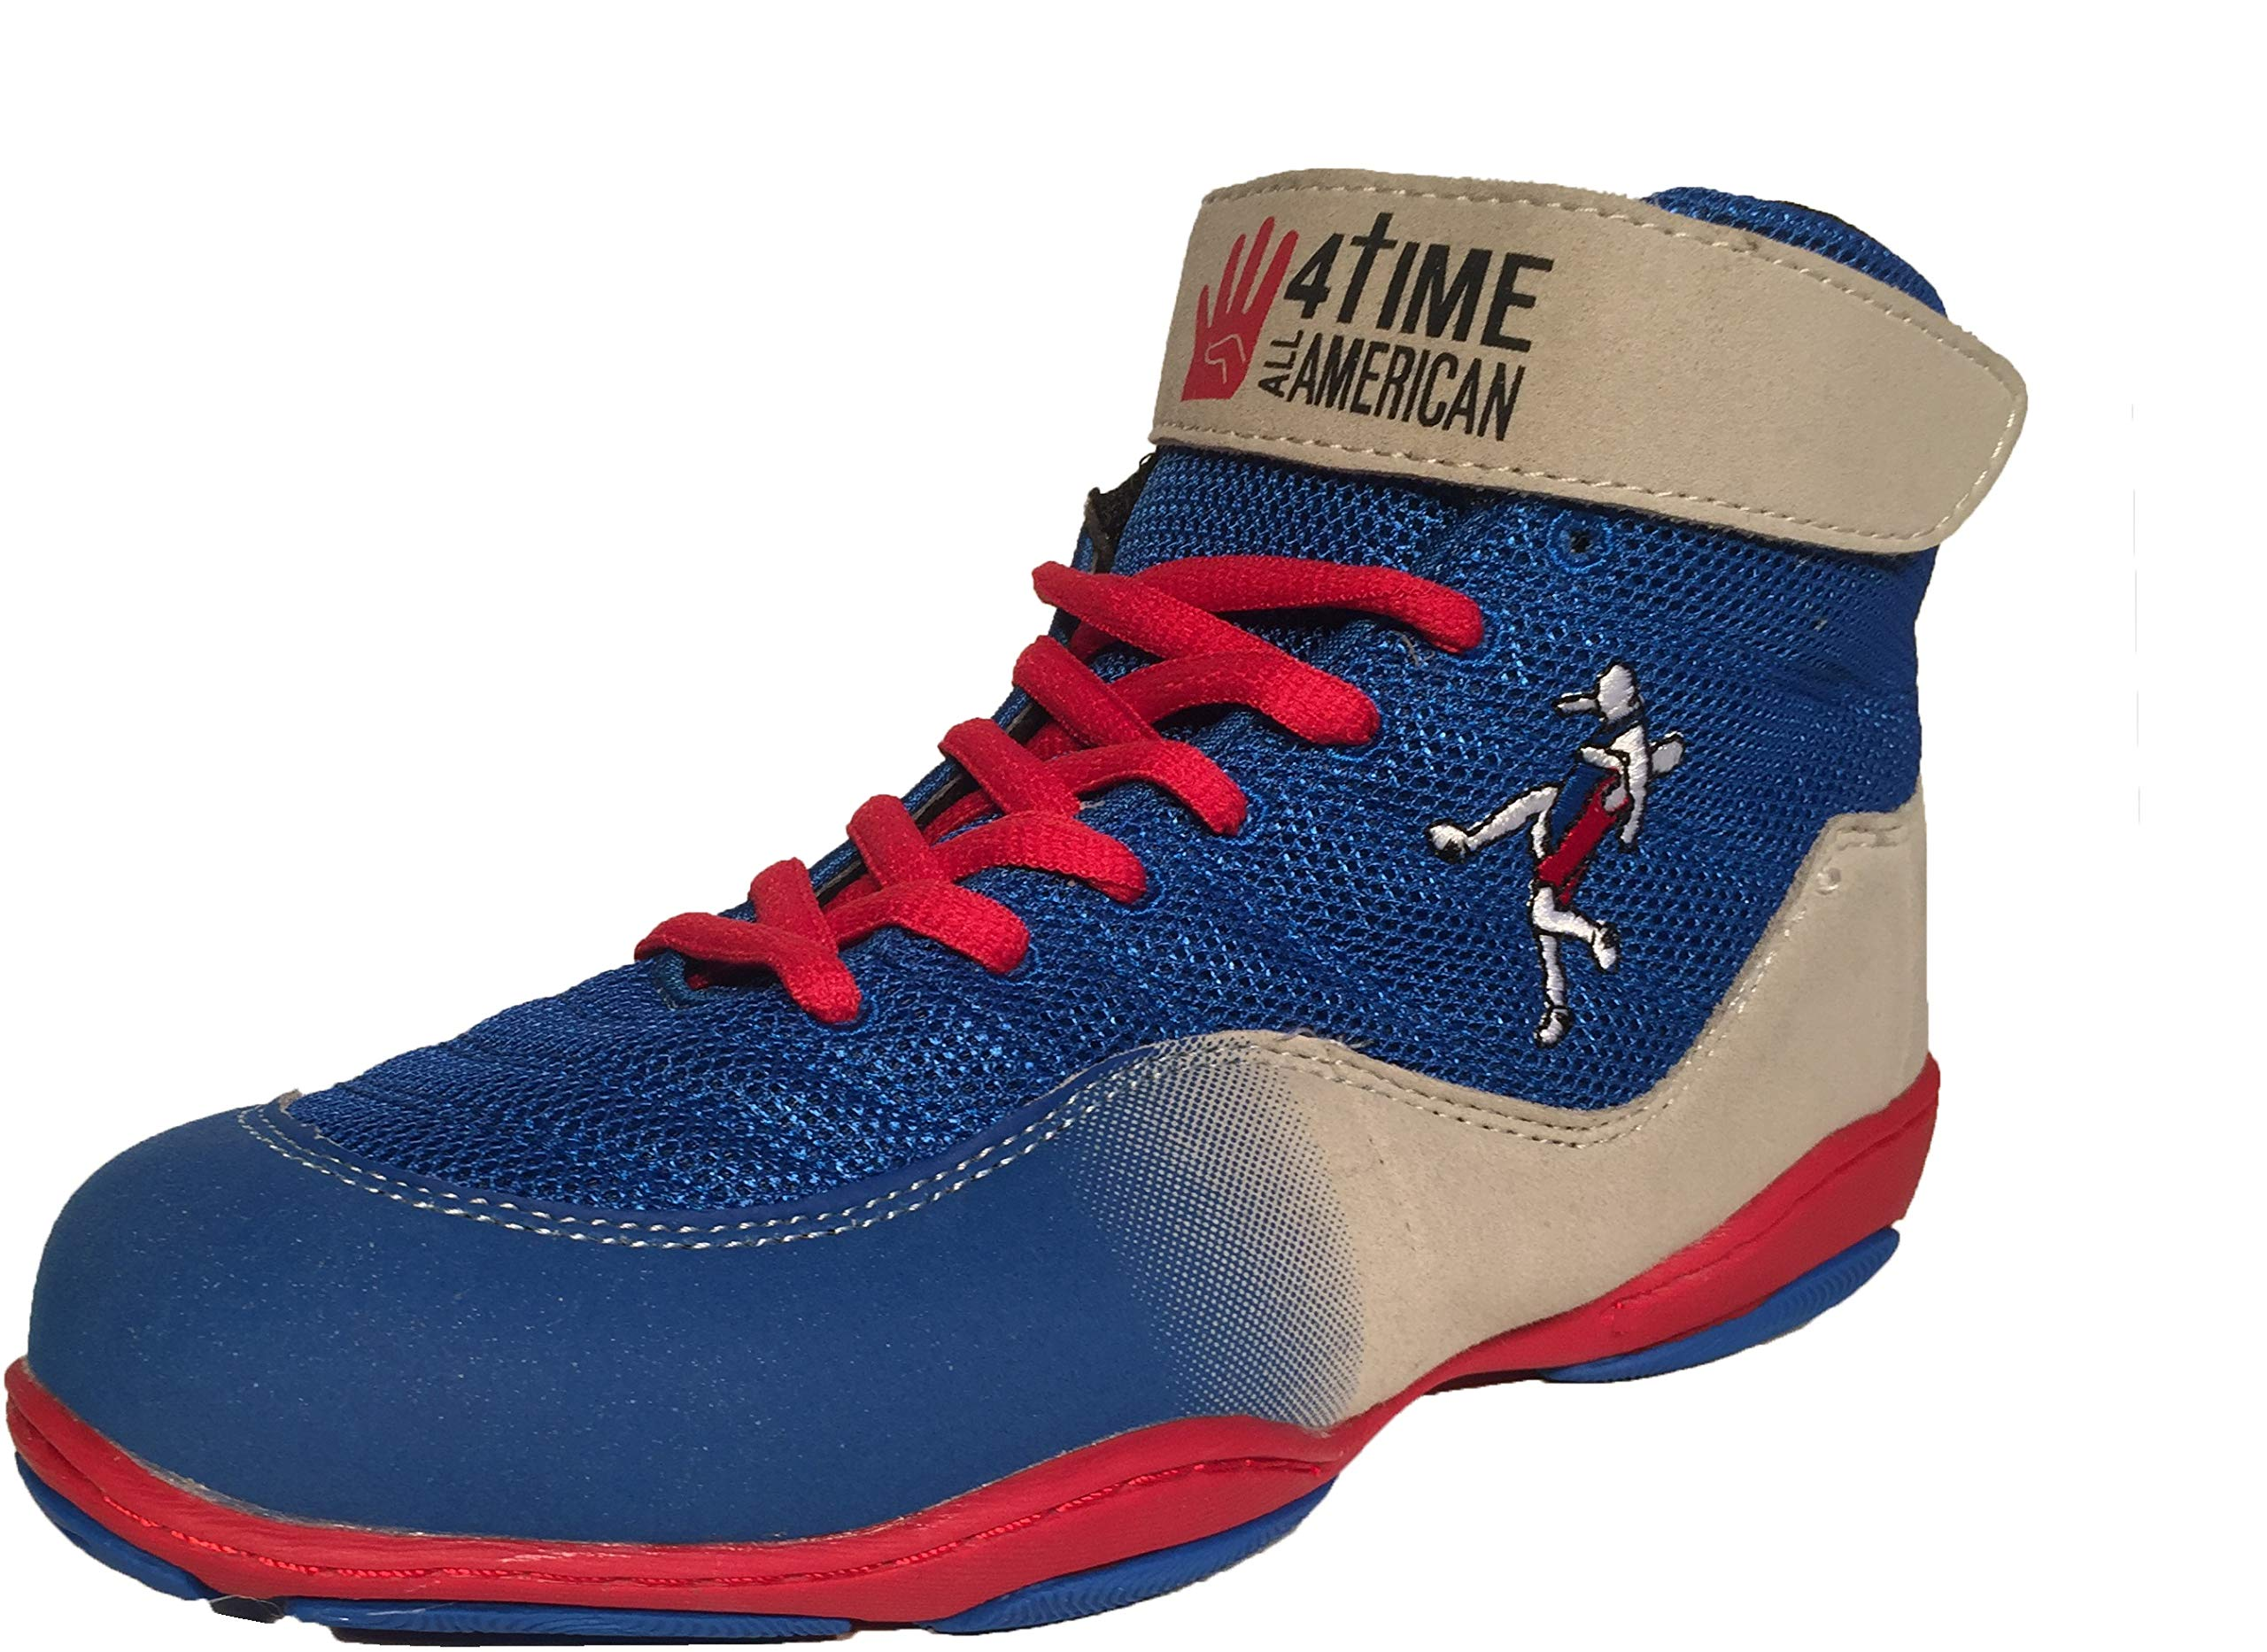 4-Time All American The Patriot, Blue Wrestling Shoes Size 4 by 4-Time All American